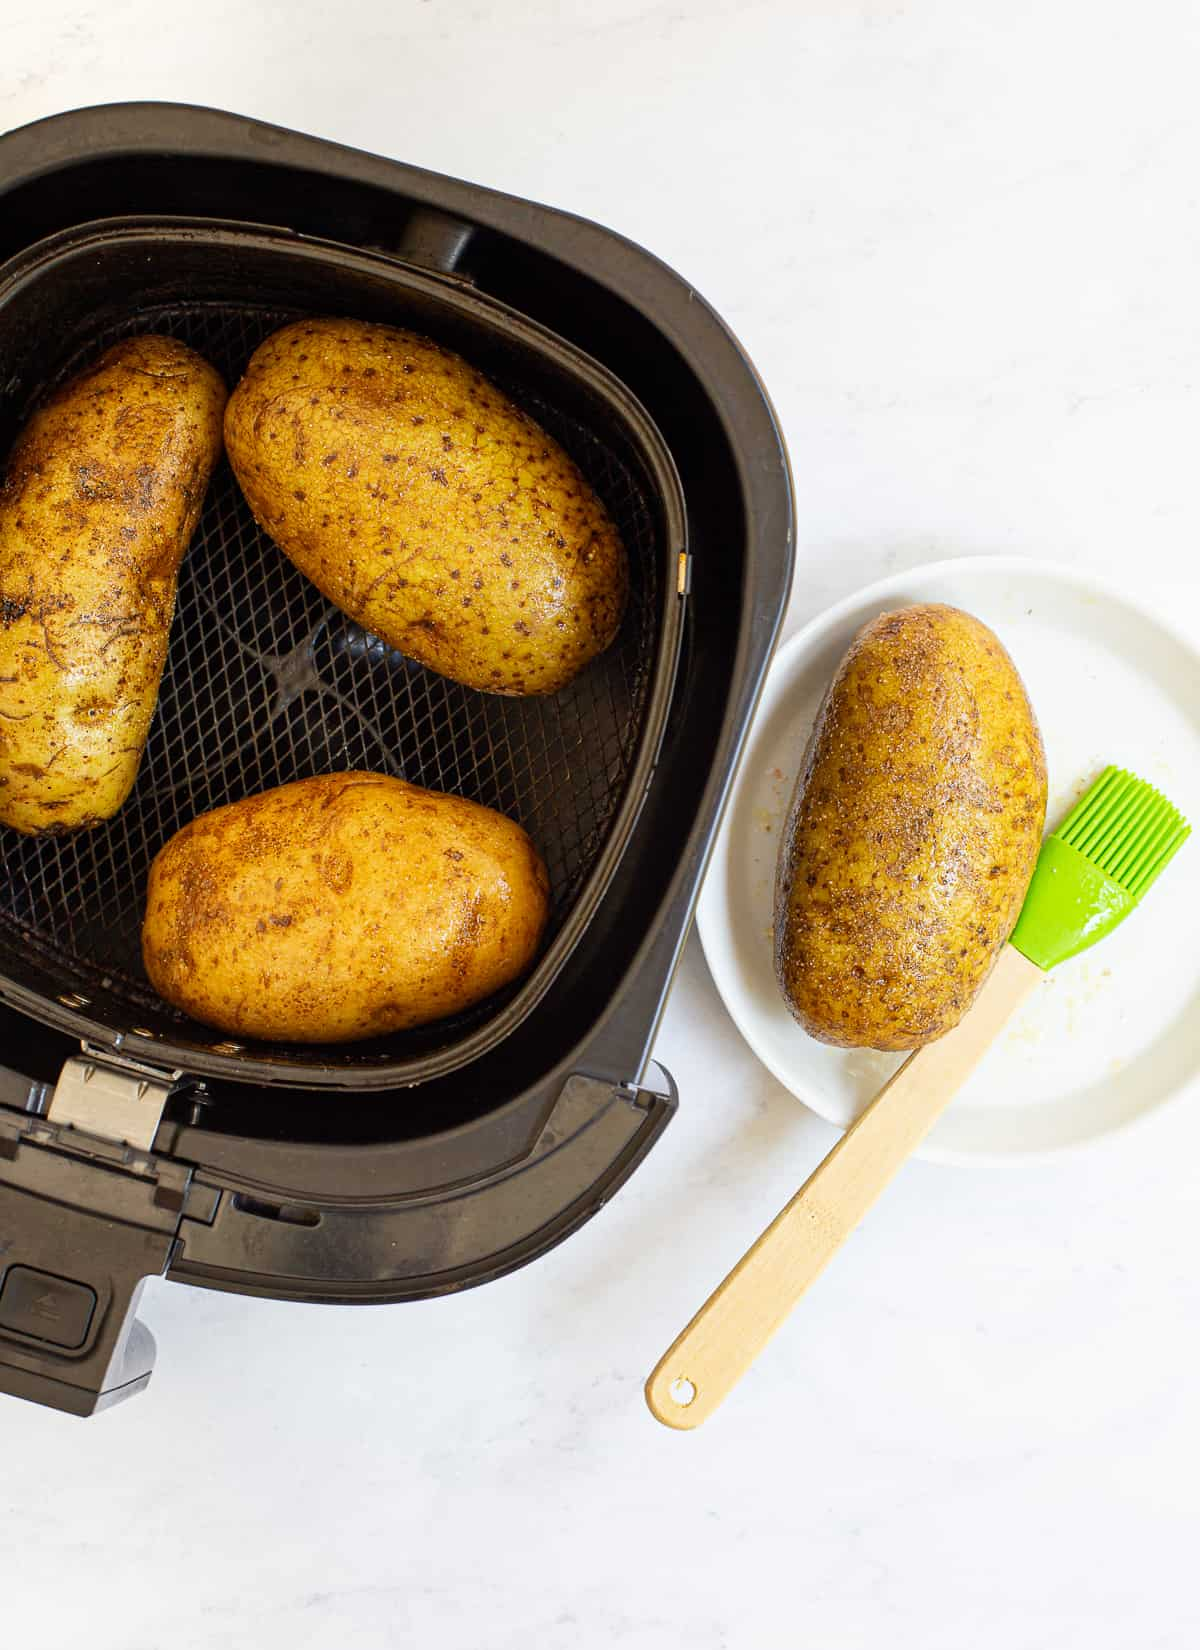 Perfect Air Fryer Baked Potatoes Recipe covering potatoes with olive oil